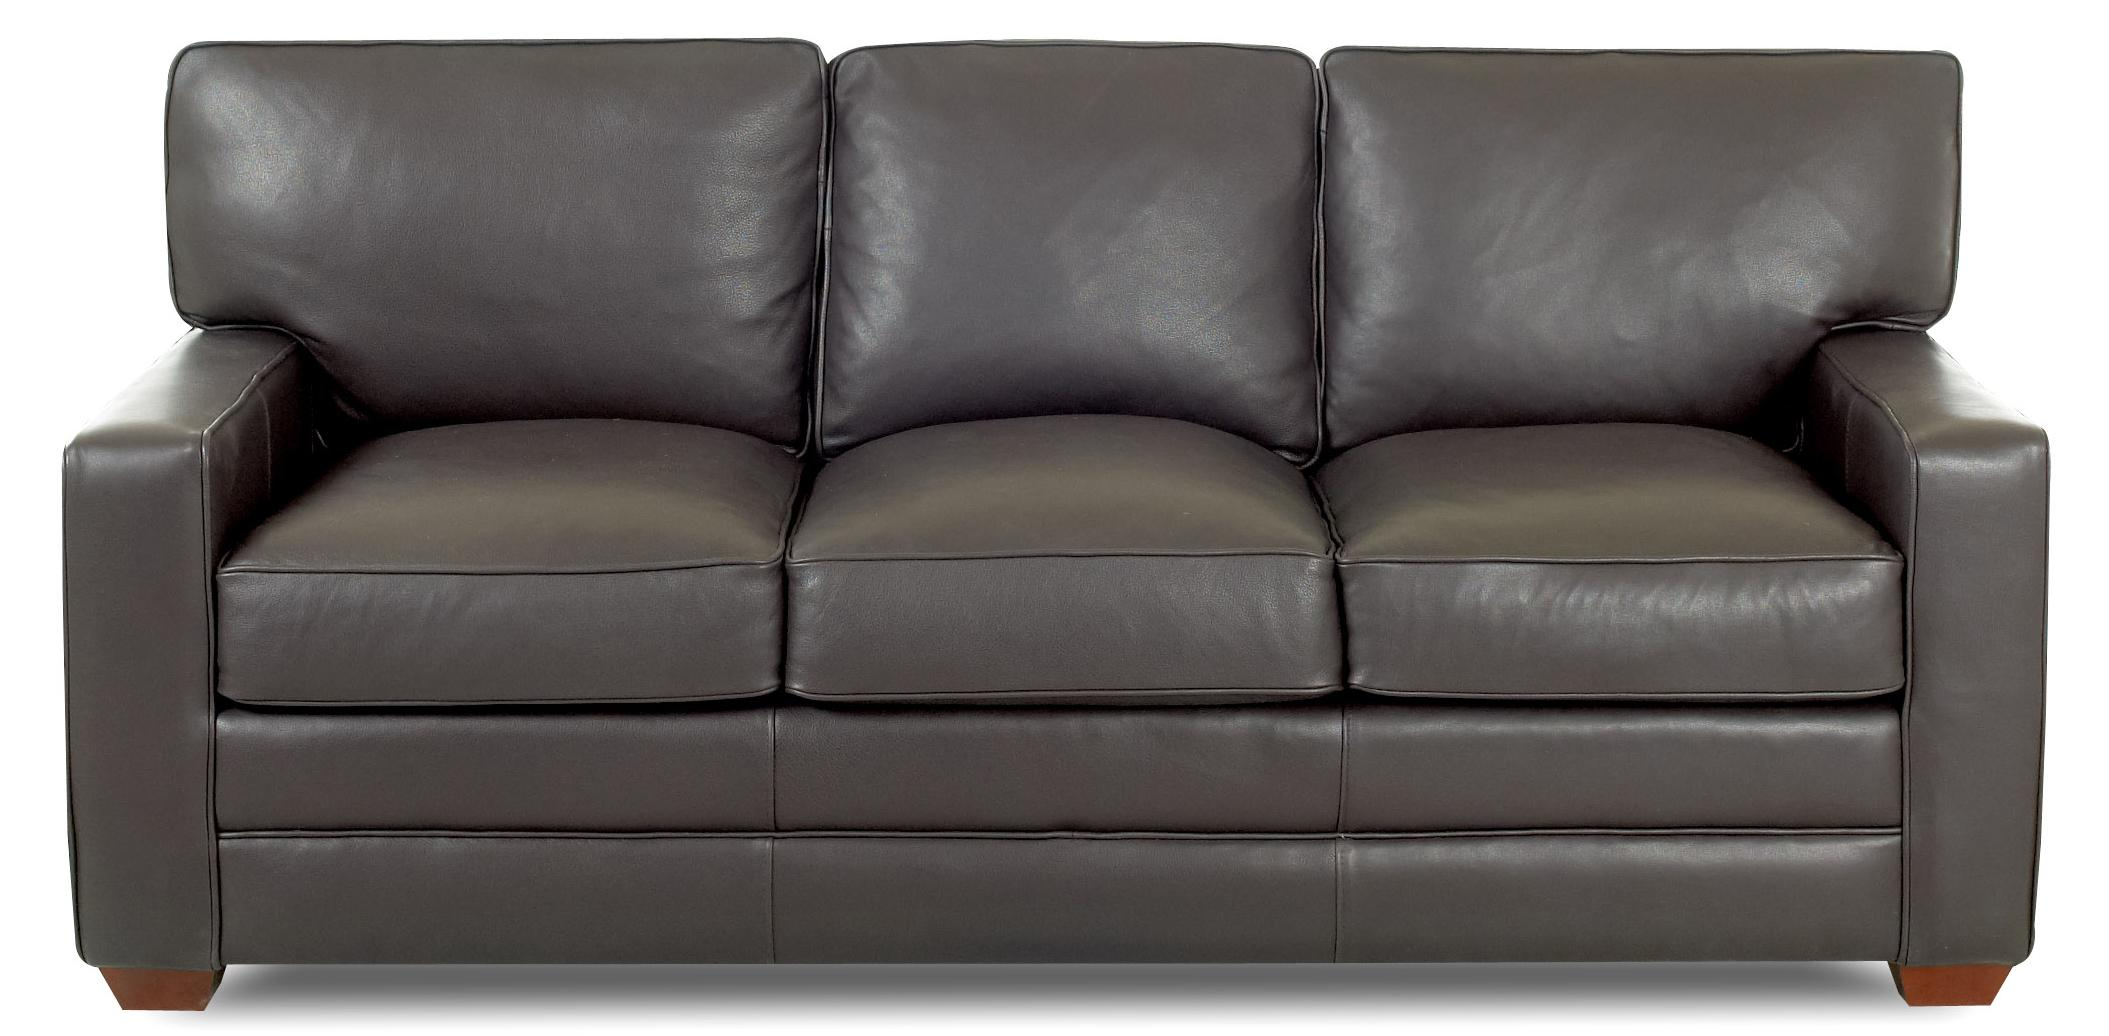 Selection Sofa by Klaussner at Northeast Factory Direct